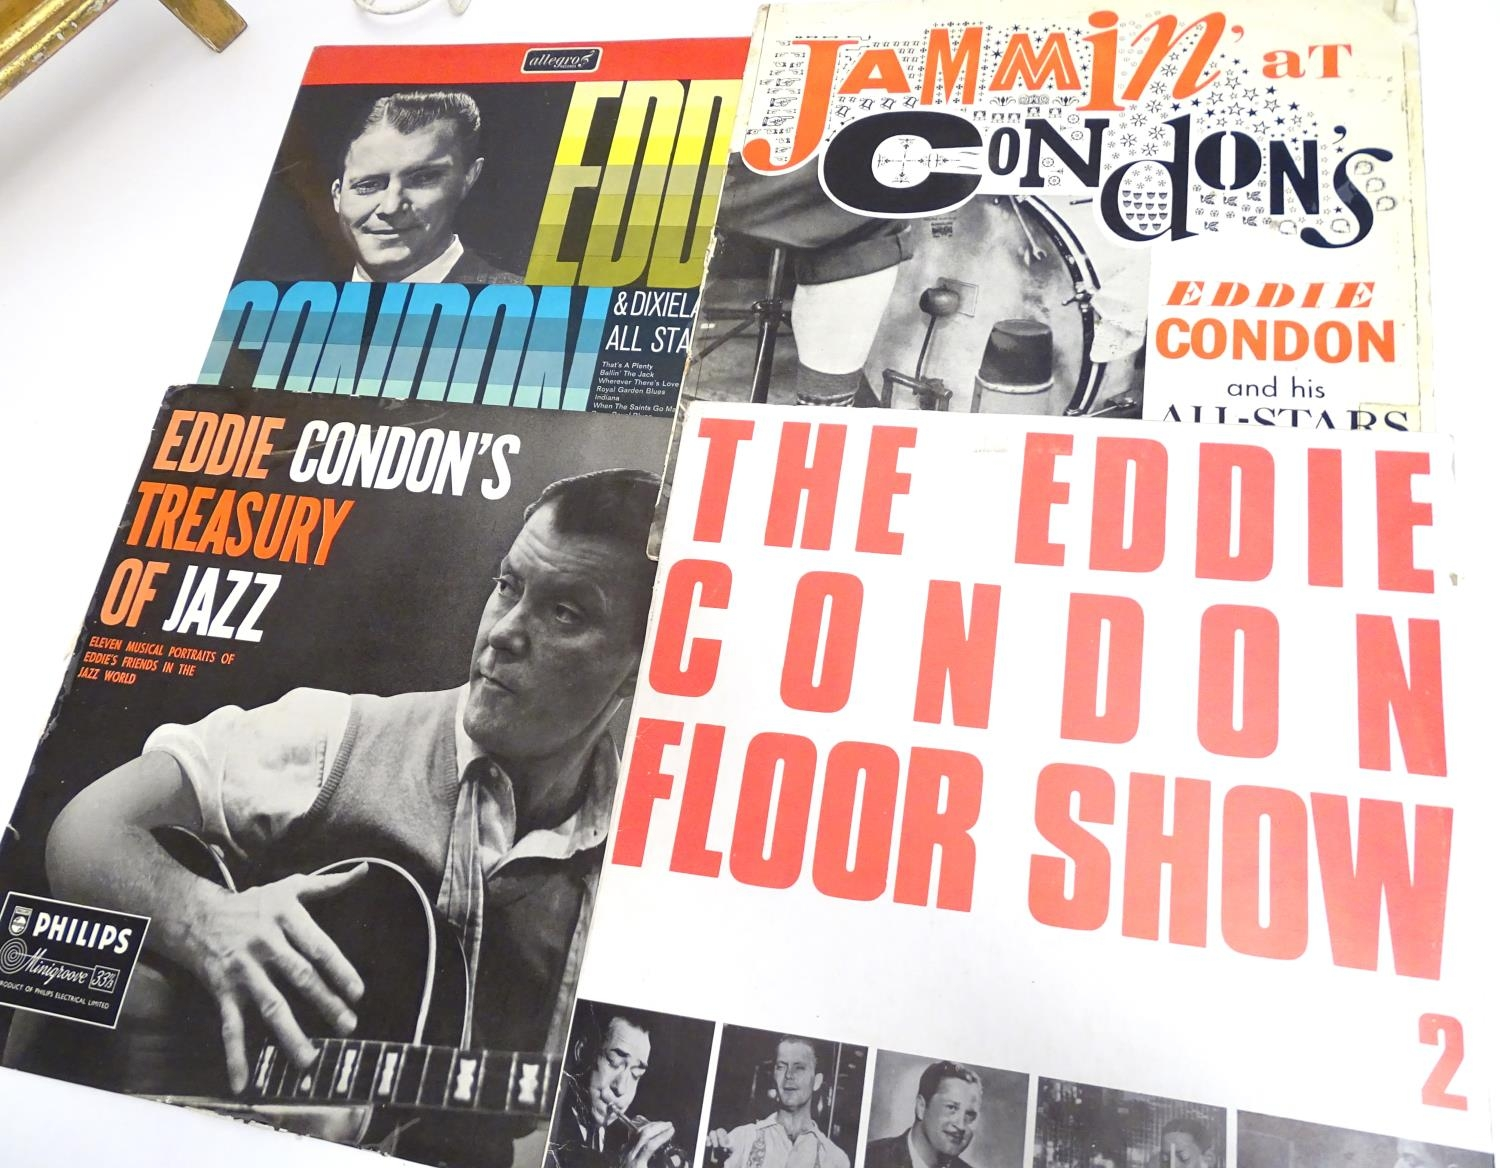 A collection of 20thC 33 rpm Vinyl records / LPs, - Jazz, comprising: The Eddie Condon Floor Show 2, - Image 15 of 19